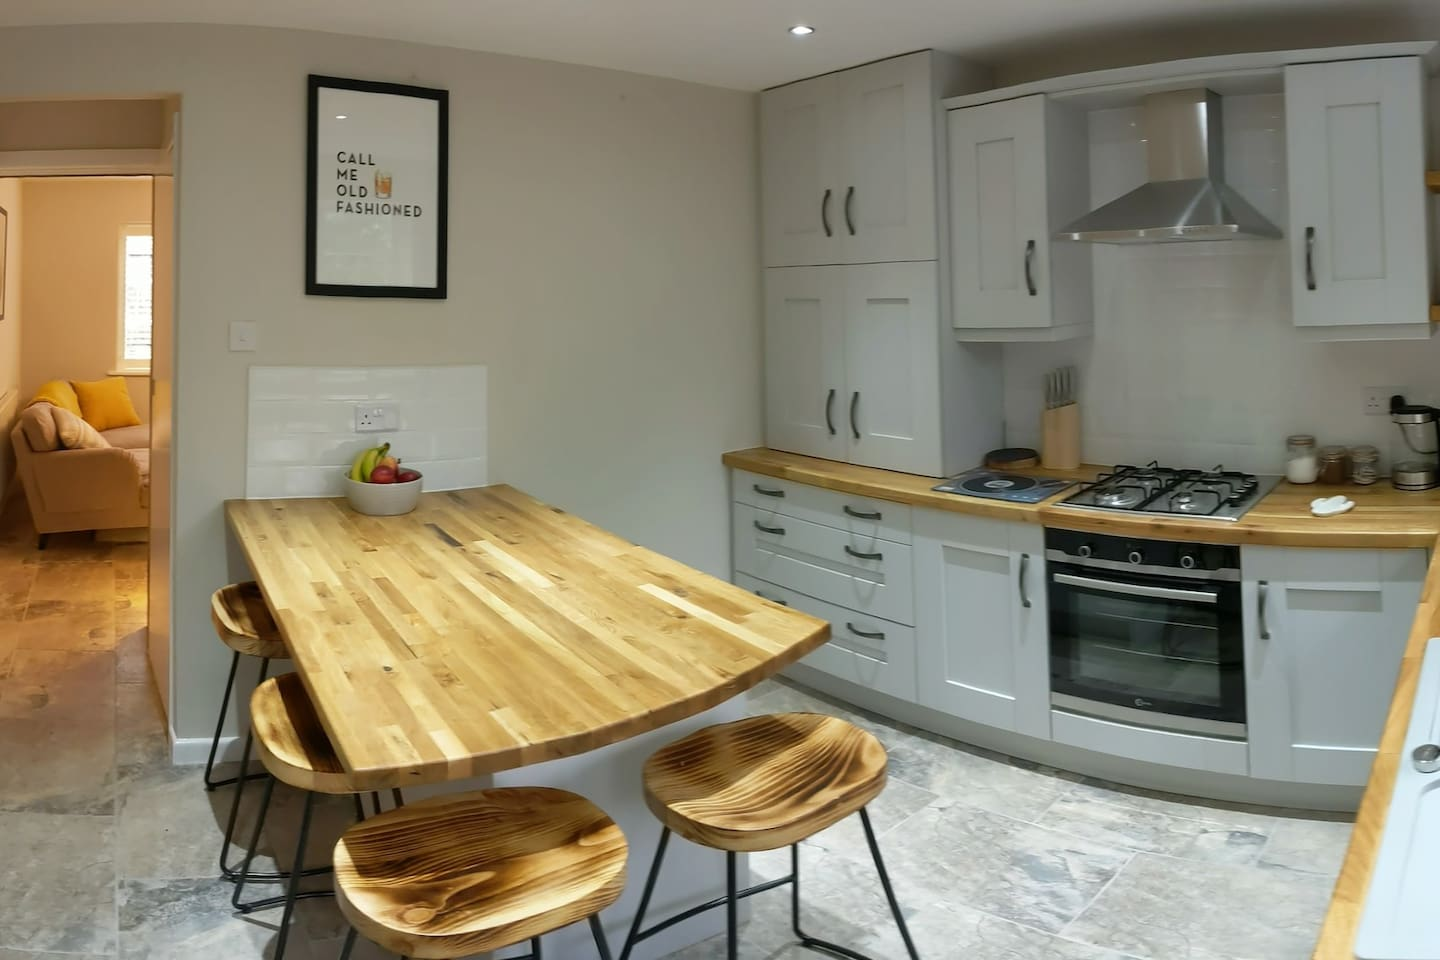 Recently Refurbished 2 bed whole house with Brand new kitchen, bathroom and off-street parking